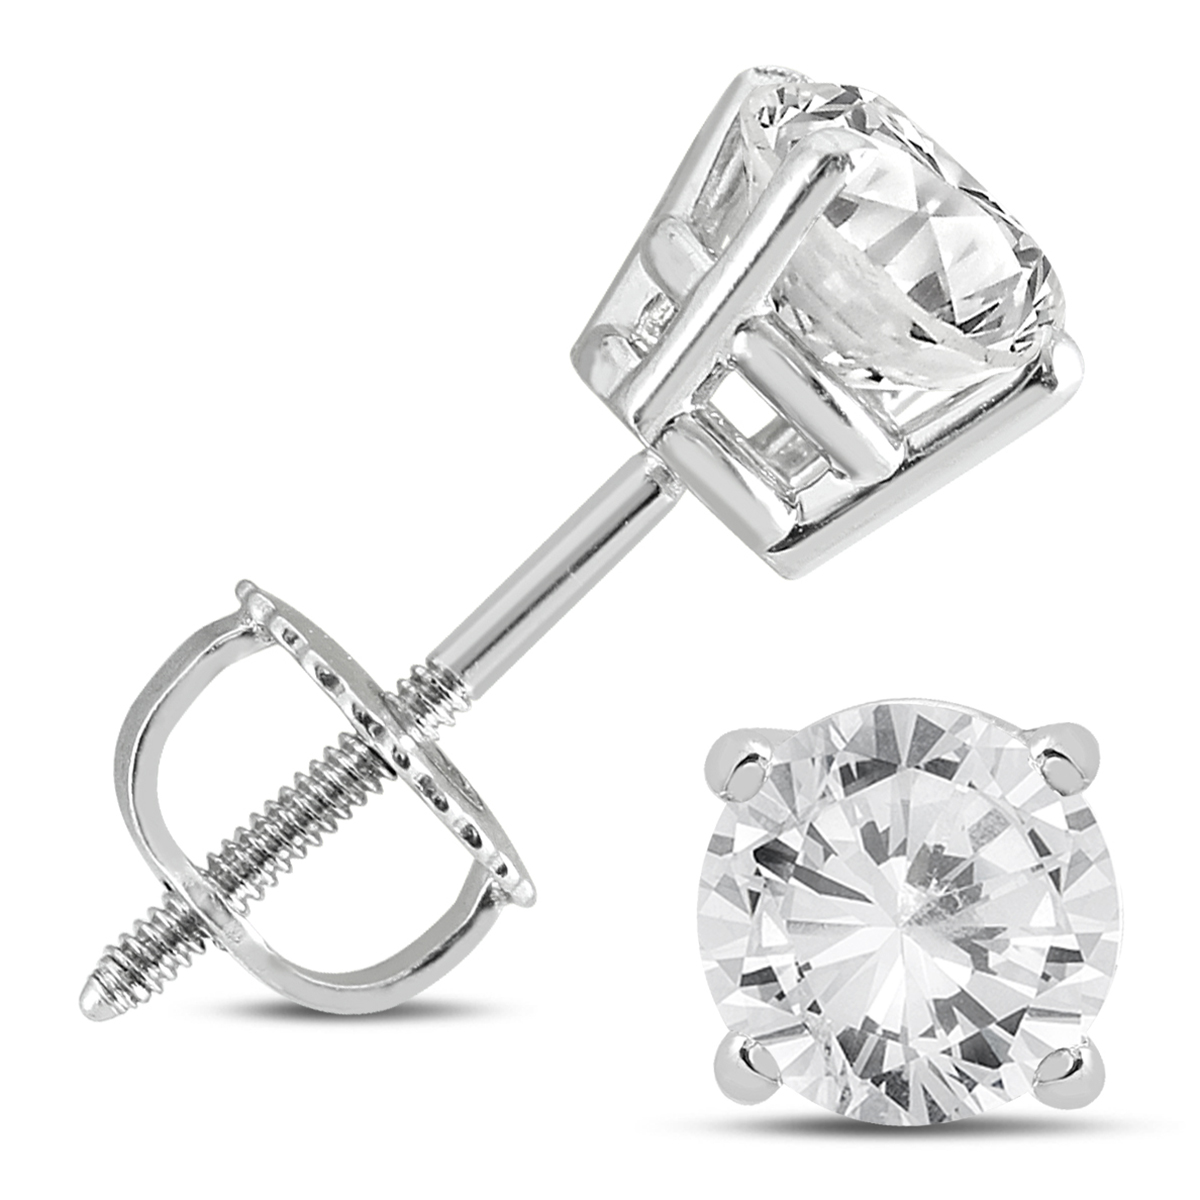 1 1/2 Carat TW Diamond Solitaire Stud Earrings in 14K White Gold (K L Color, I2 I3 Clarity)